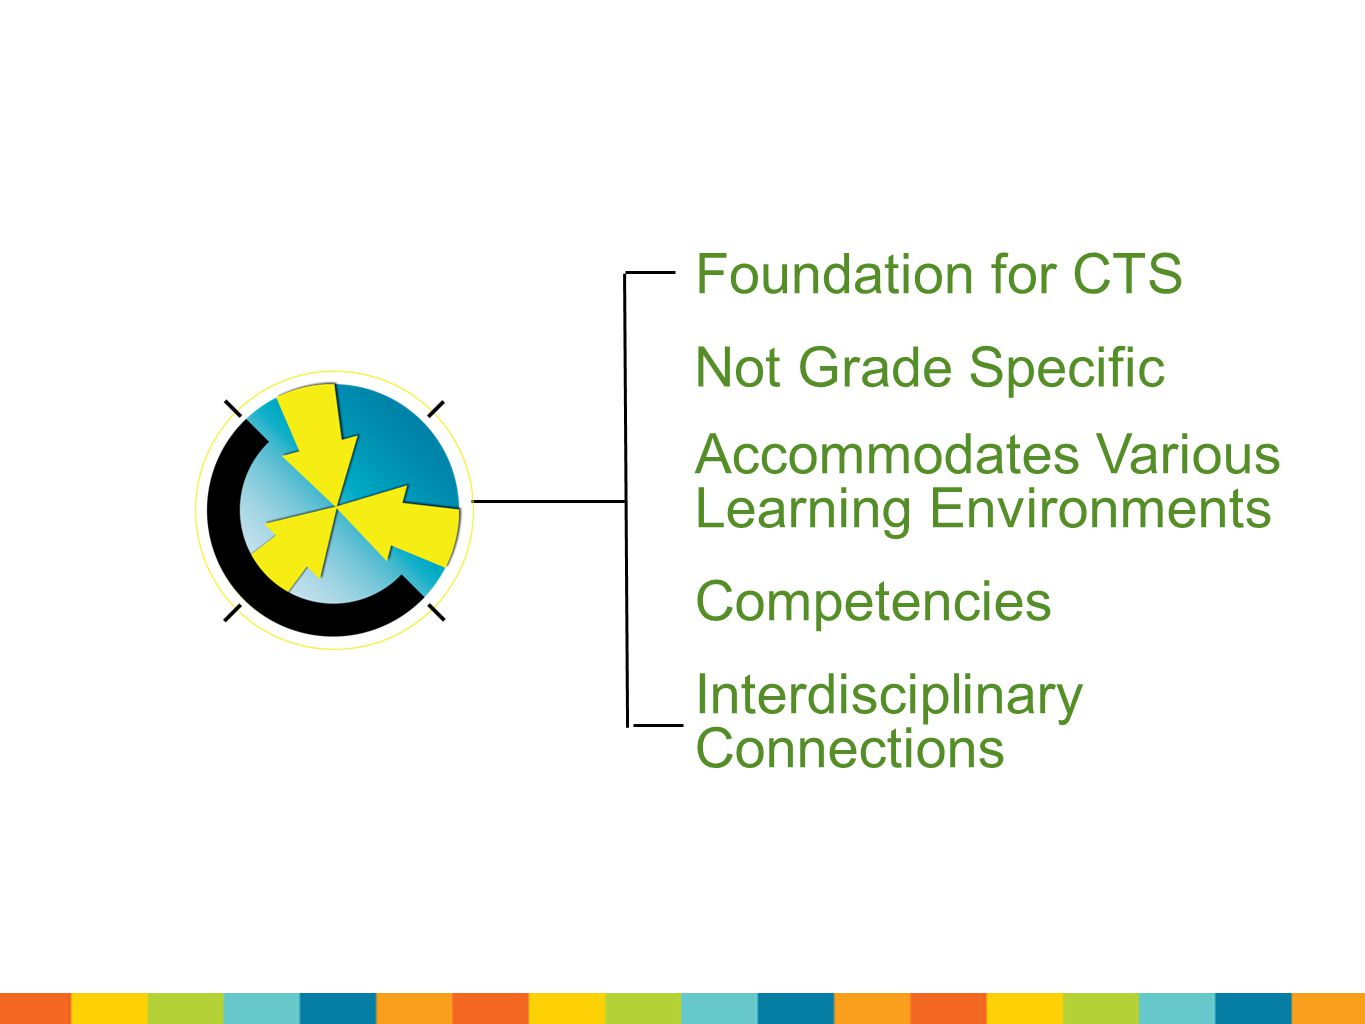 Foundation for CTS Not Grade Specific Accommodates Various Learning Environments Competencies Interdisciplinary Connections